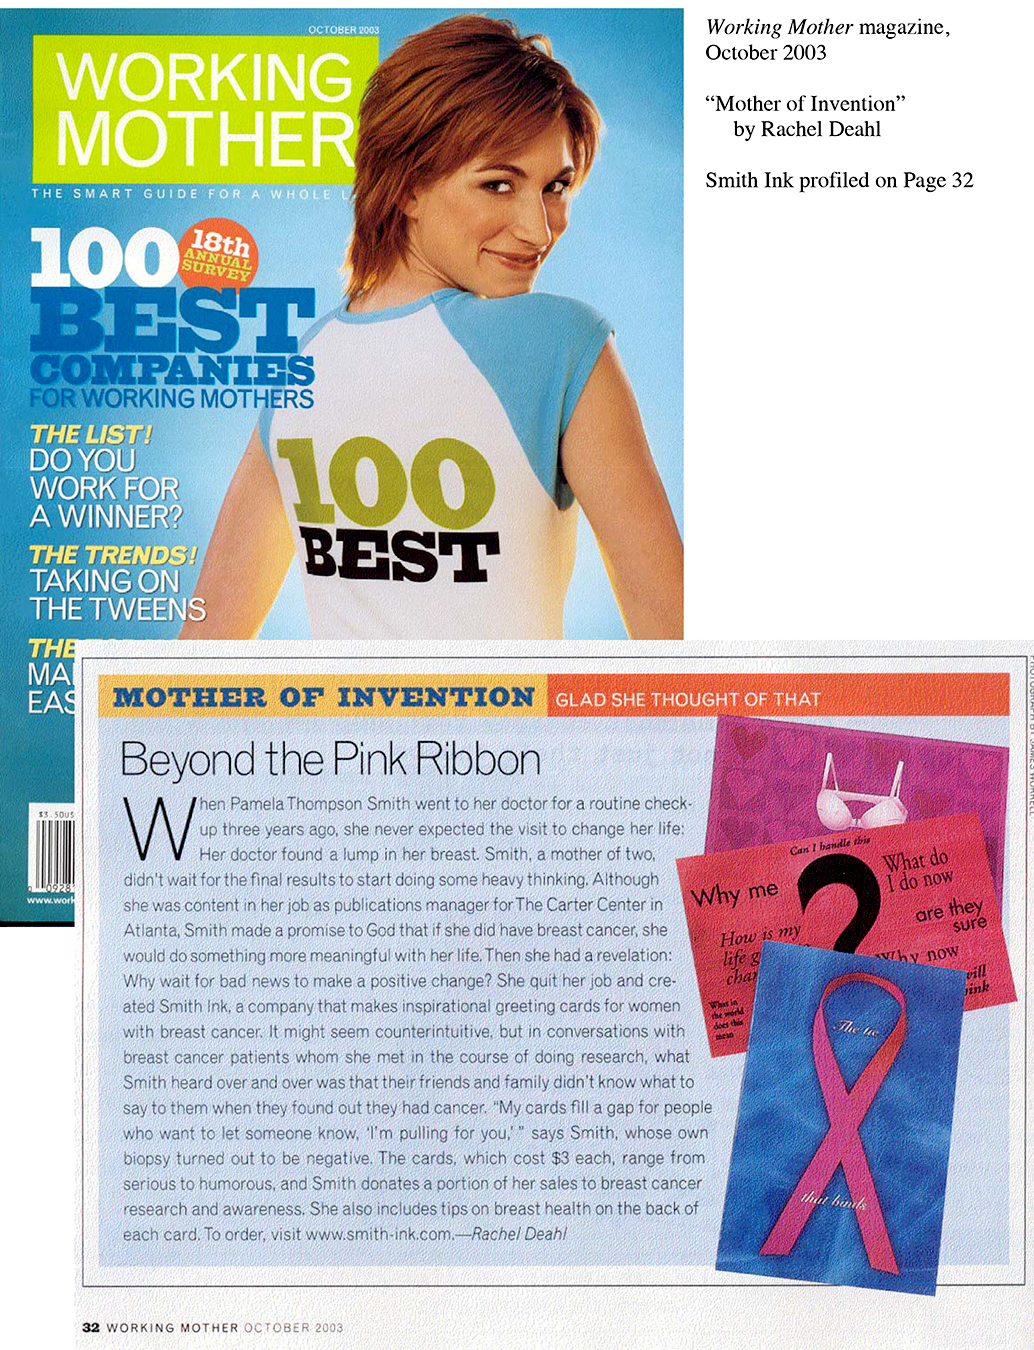 Working Mother Magazine Article about Pamela Smith, Smith Ink, LLC